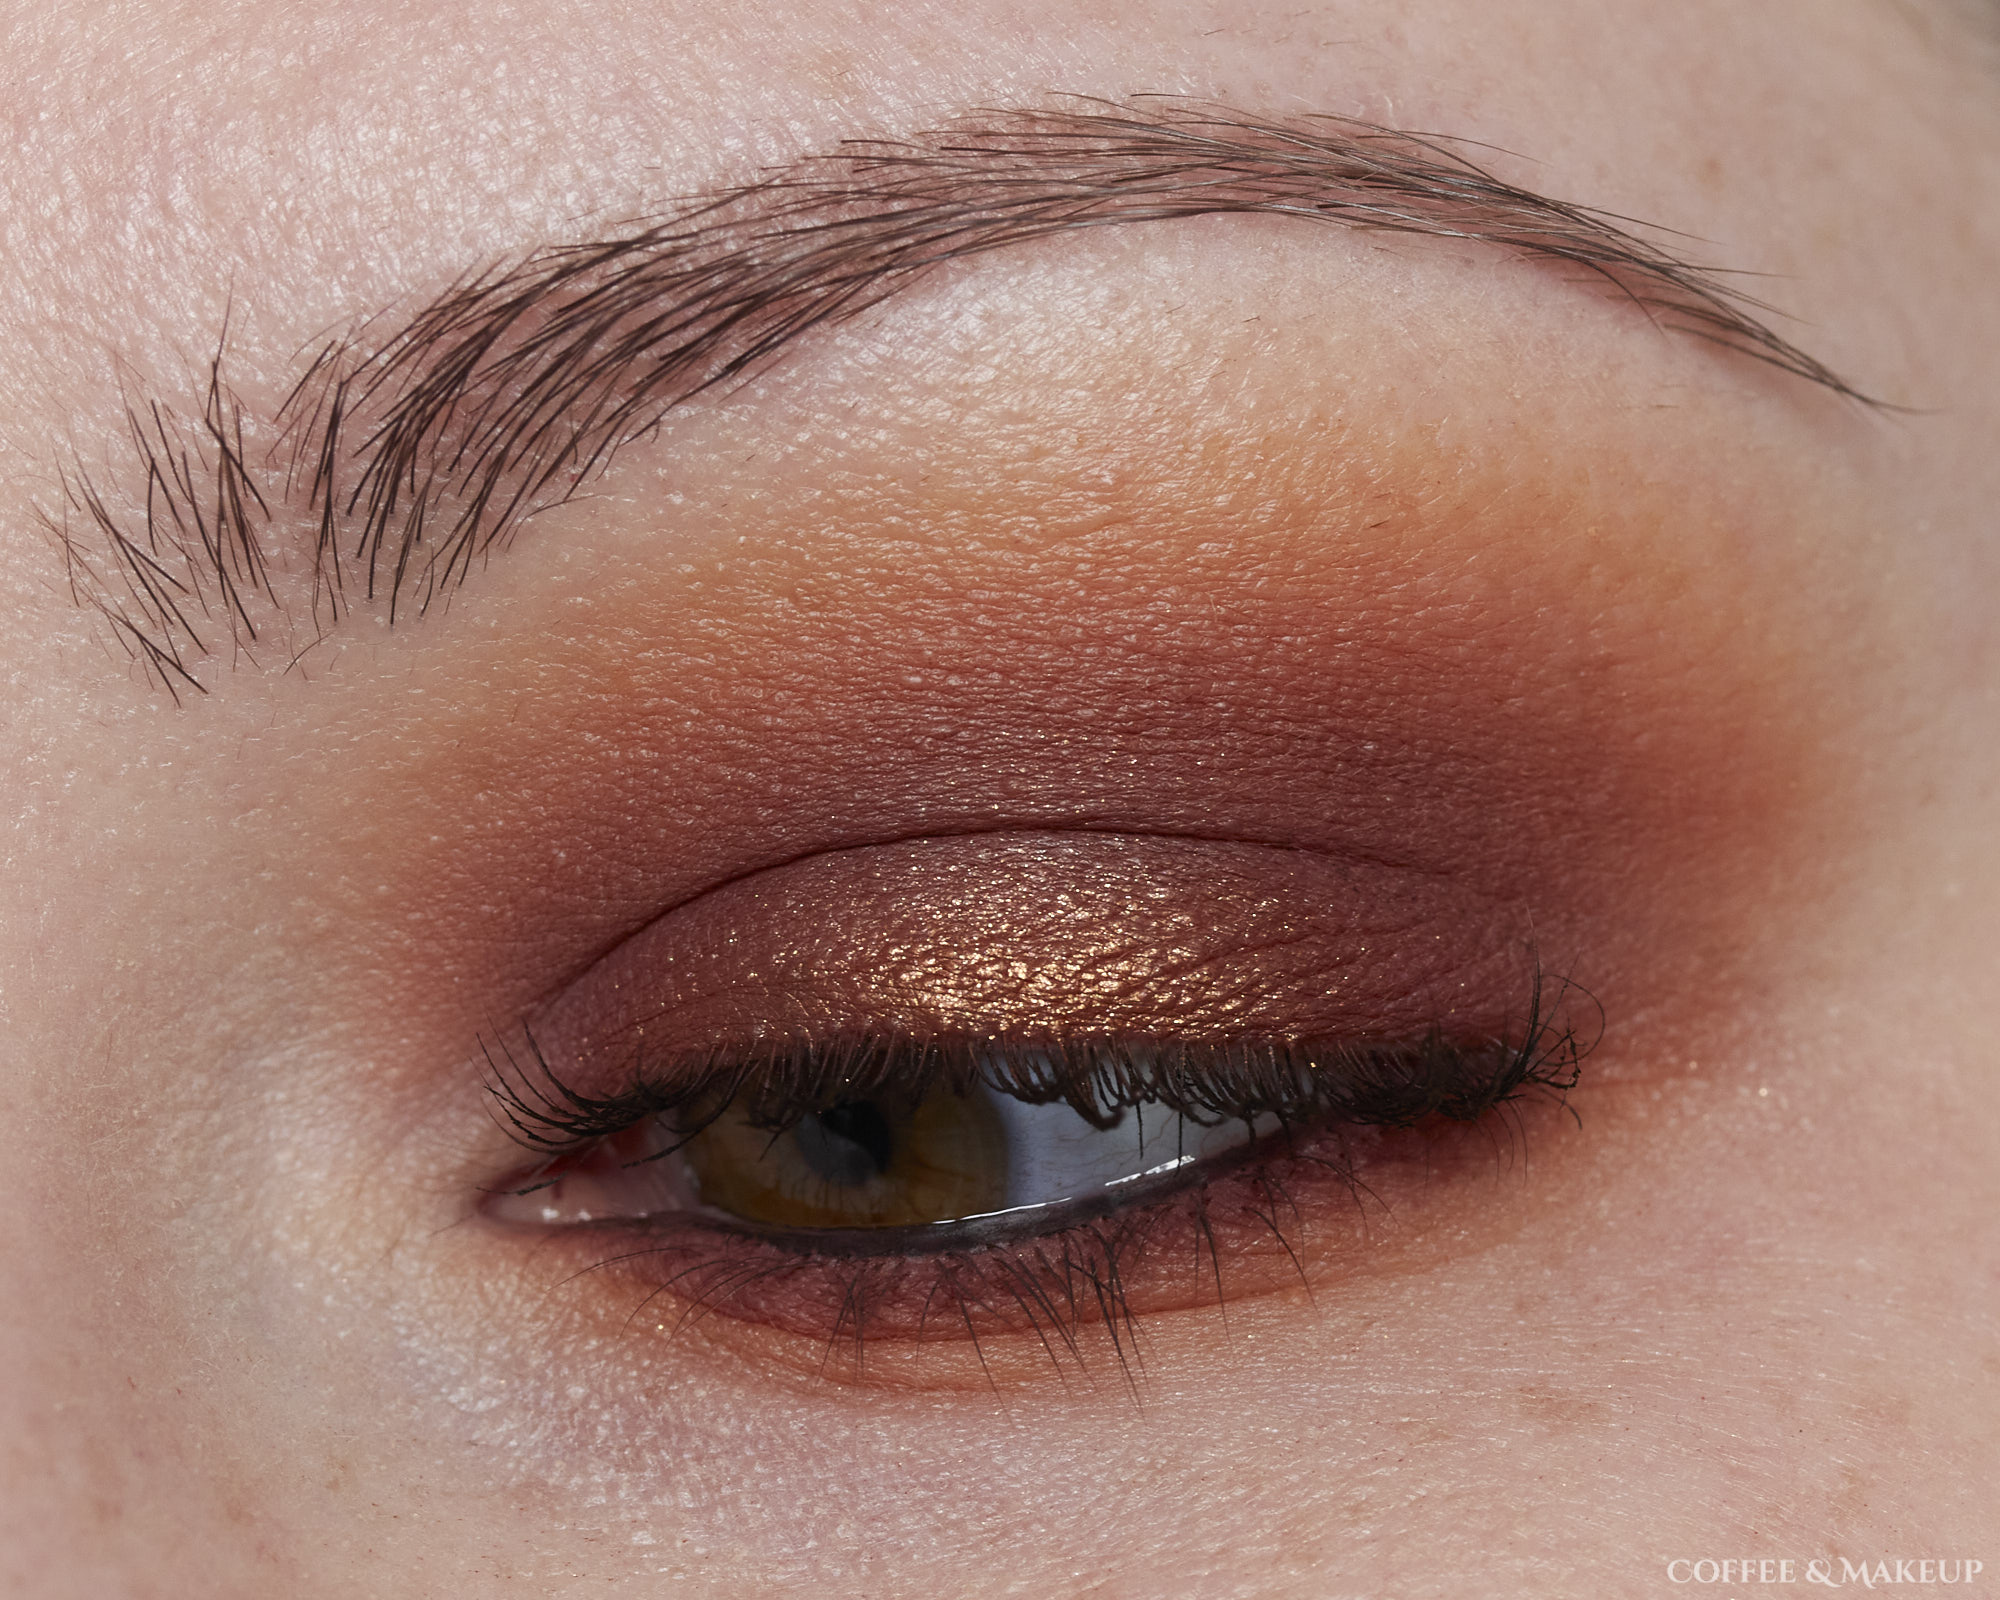 Makeup Geek Eyeshadow Look #2